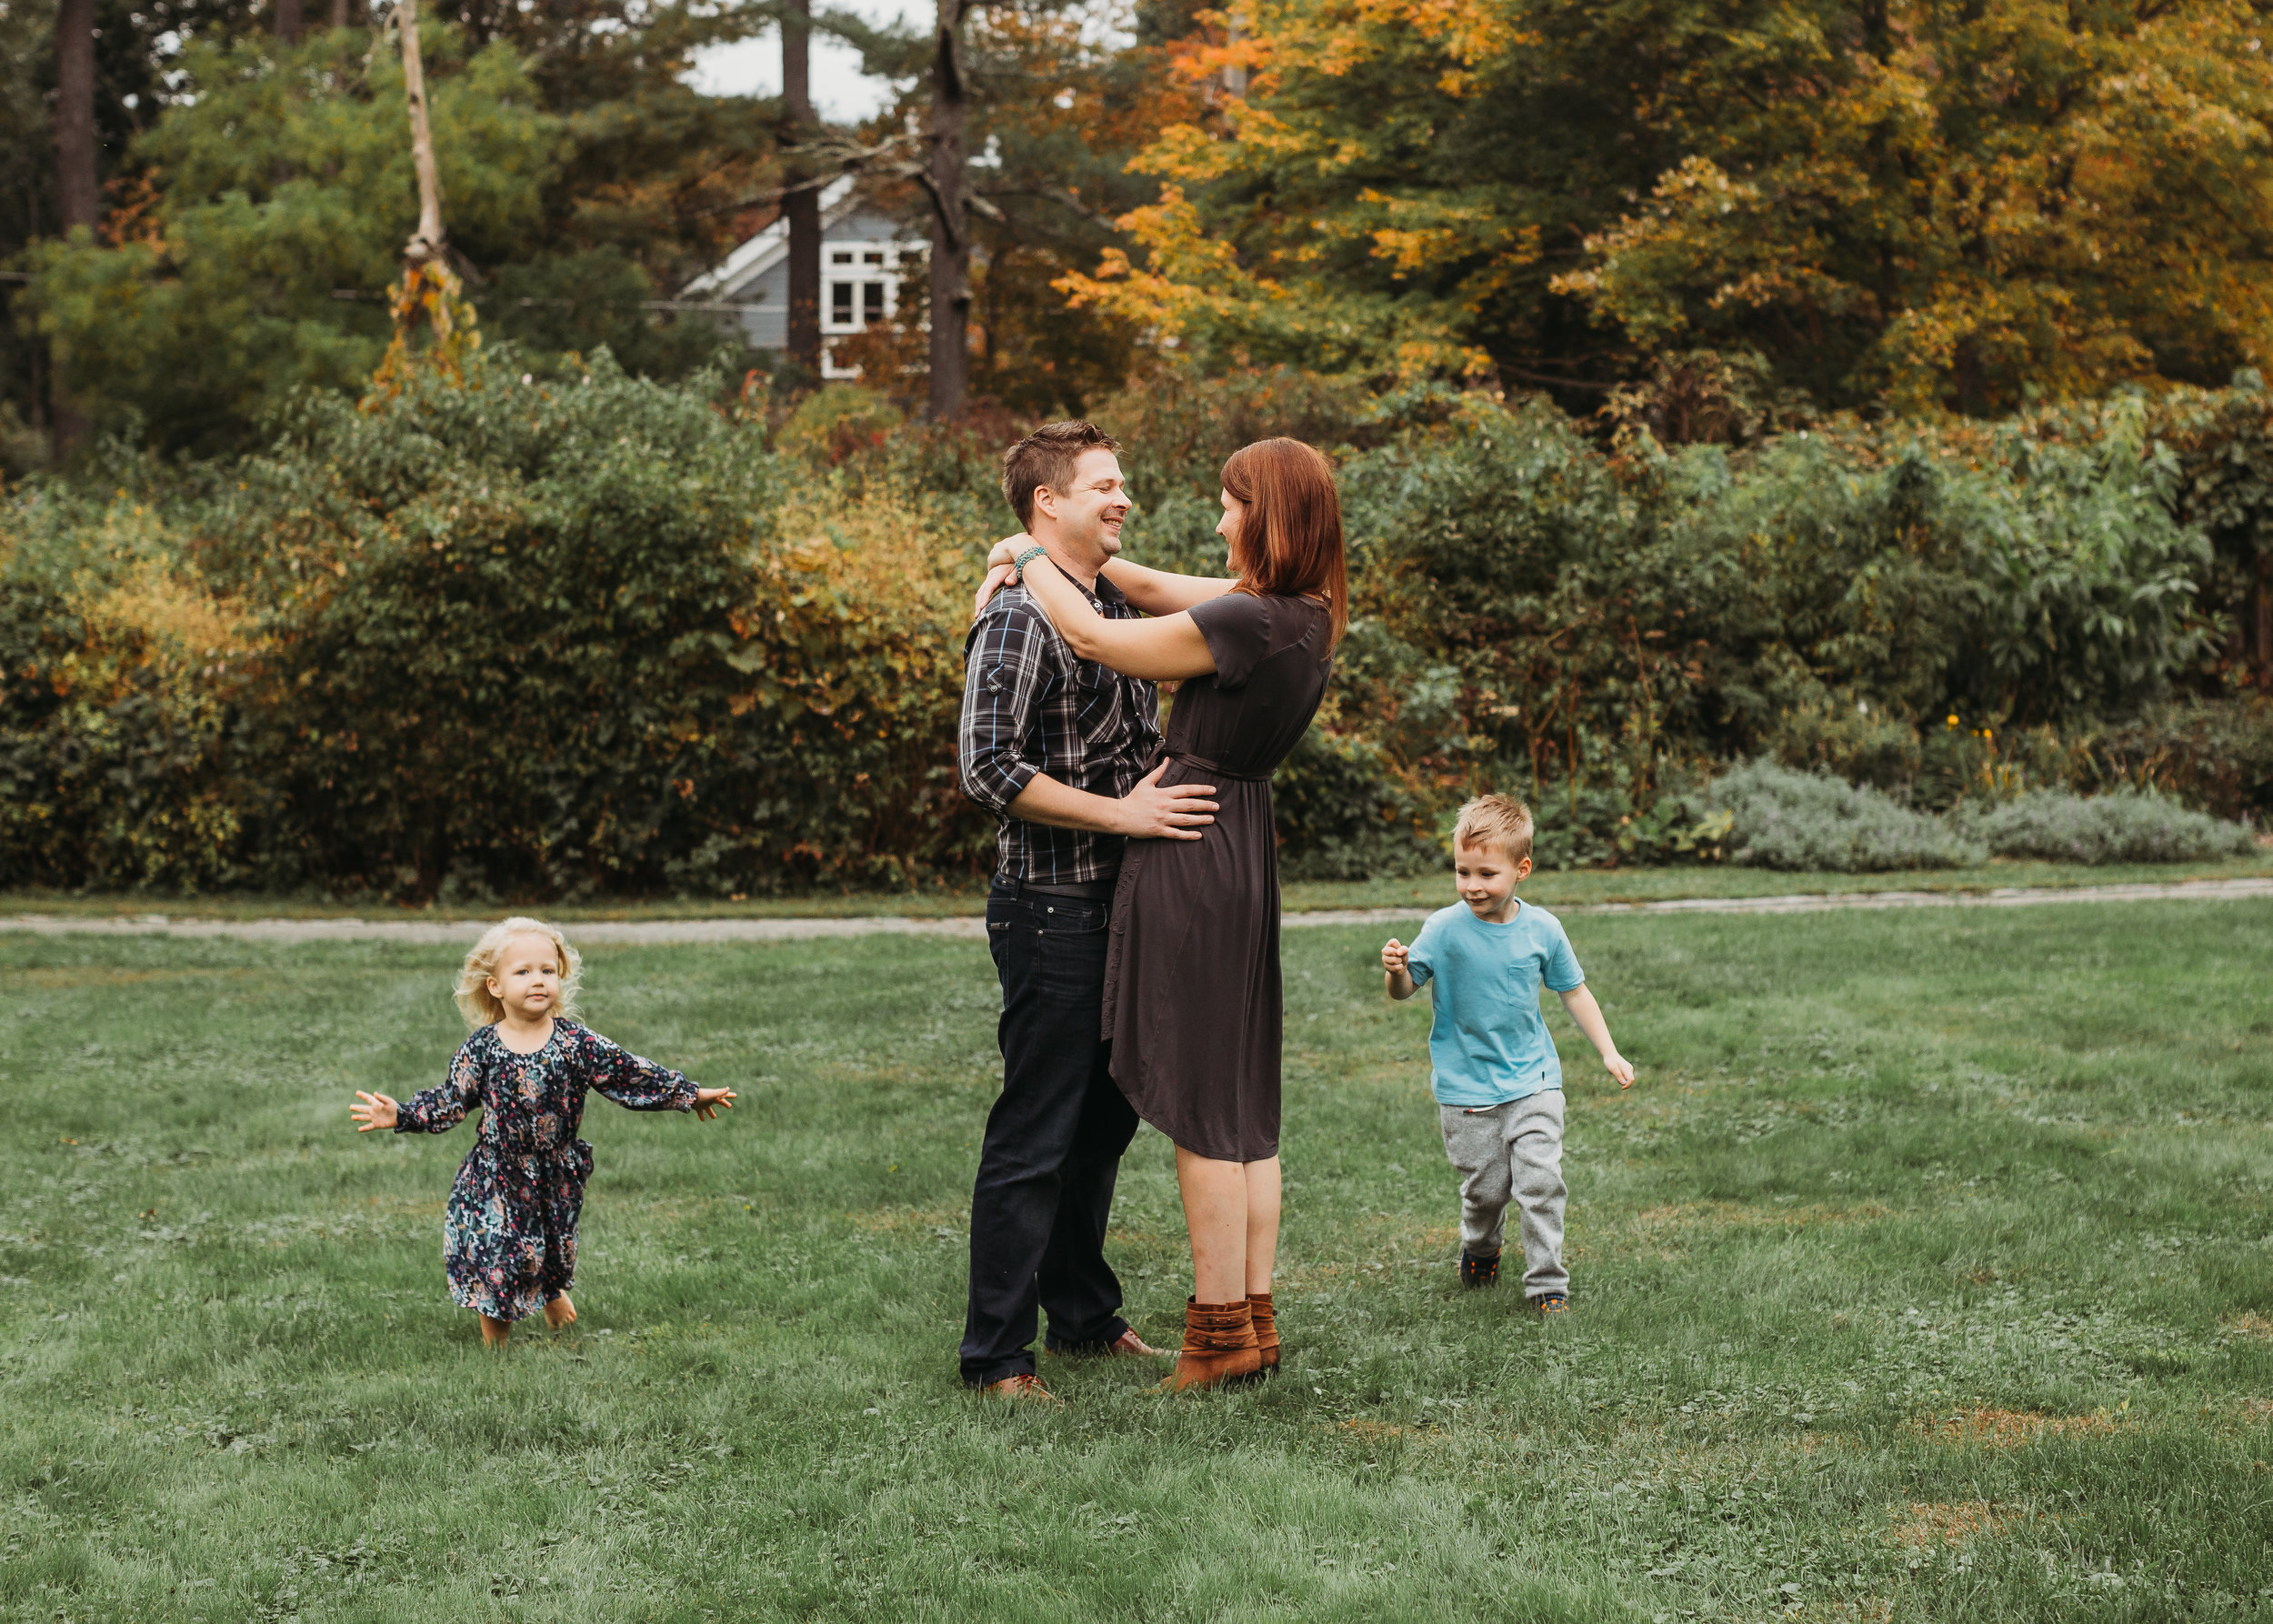 get-whole-family-excited-family-photos-bostonfamilyphotographer-6.jpg